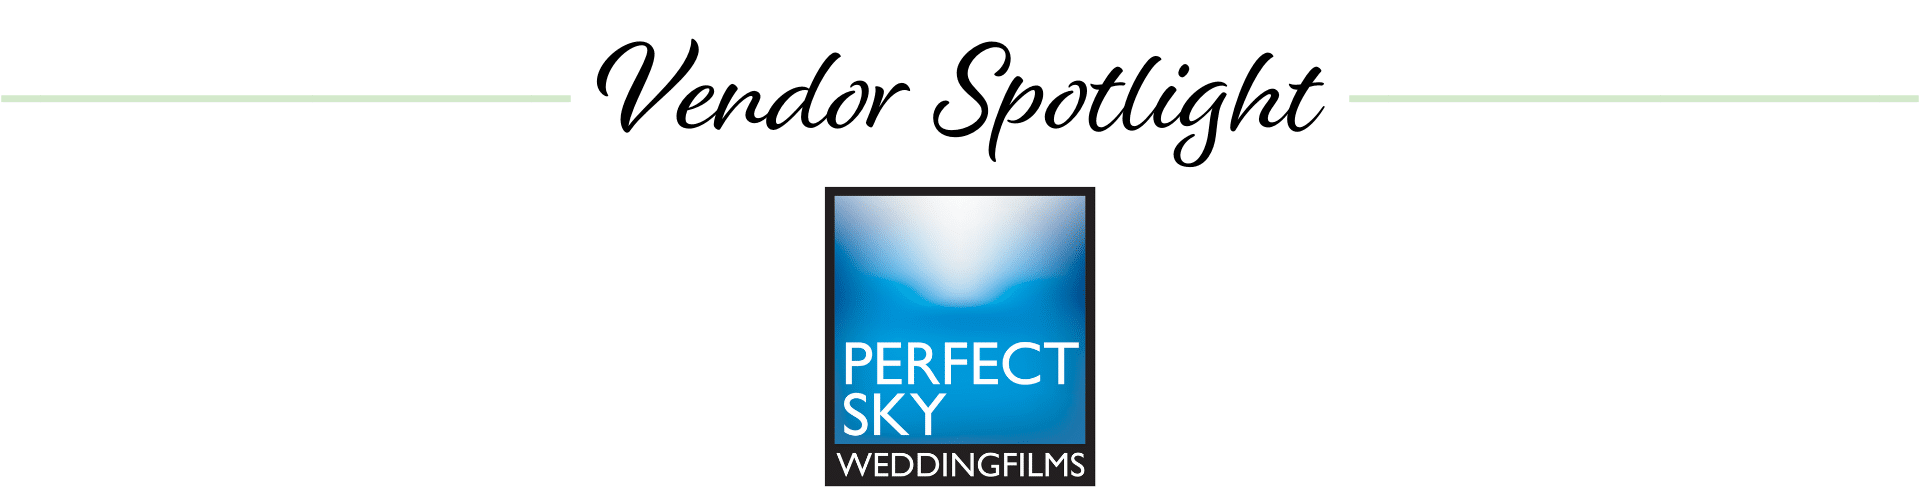 Perfect Sky WeddingFilms Blog headers